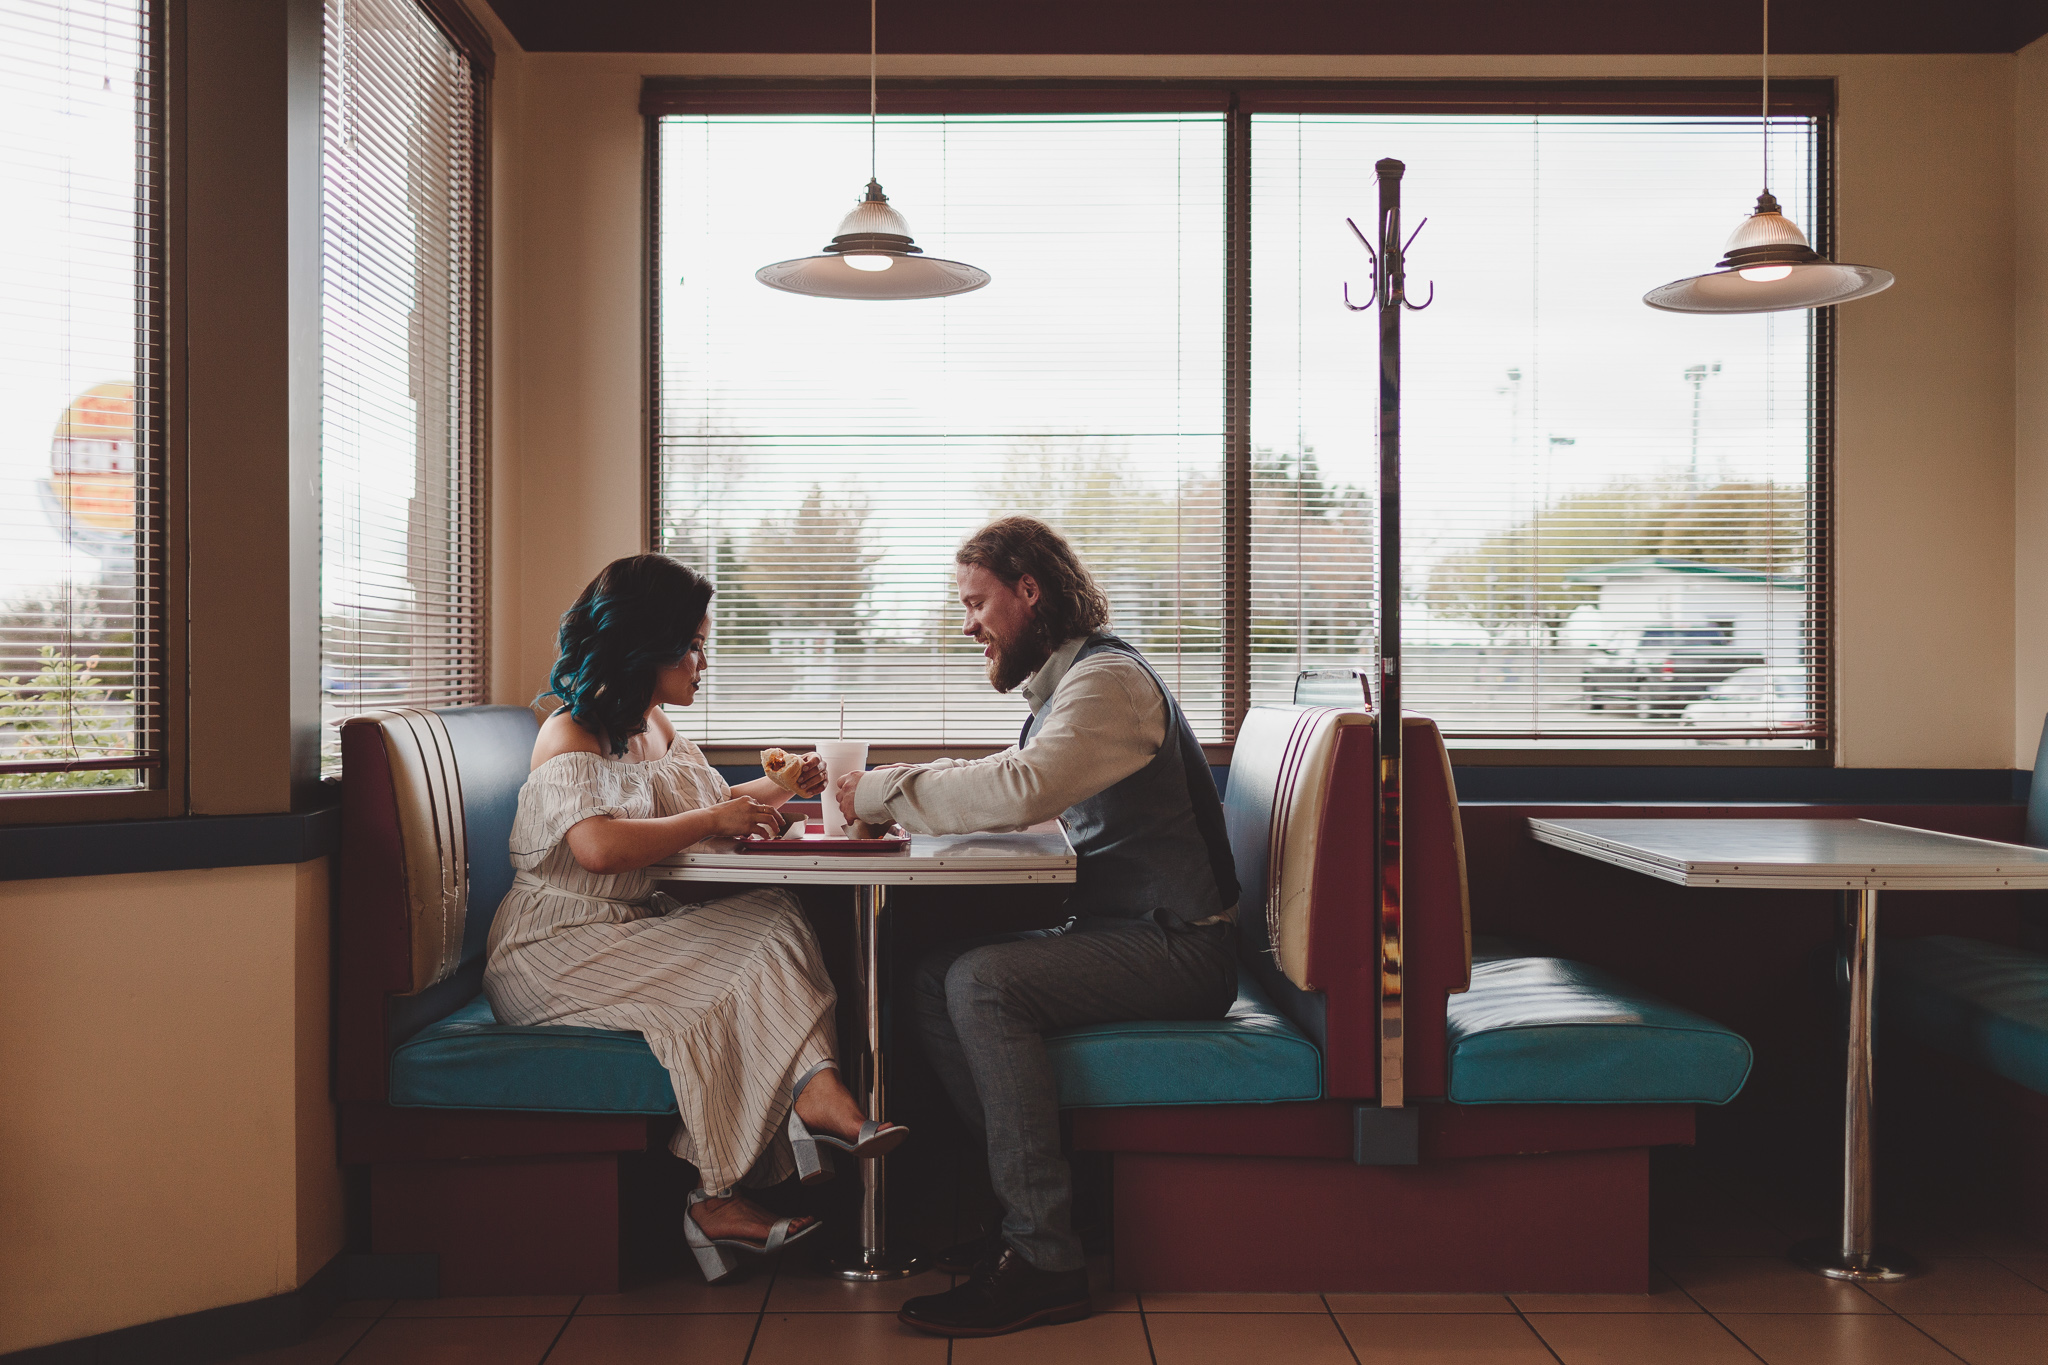 A documentary style engagement photo